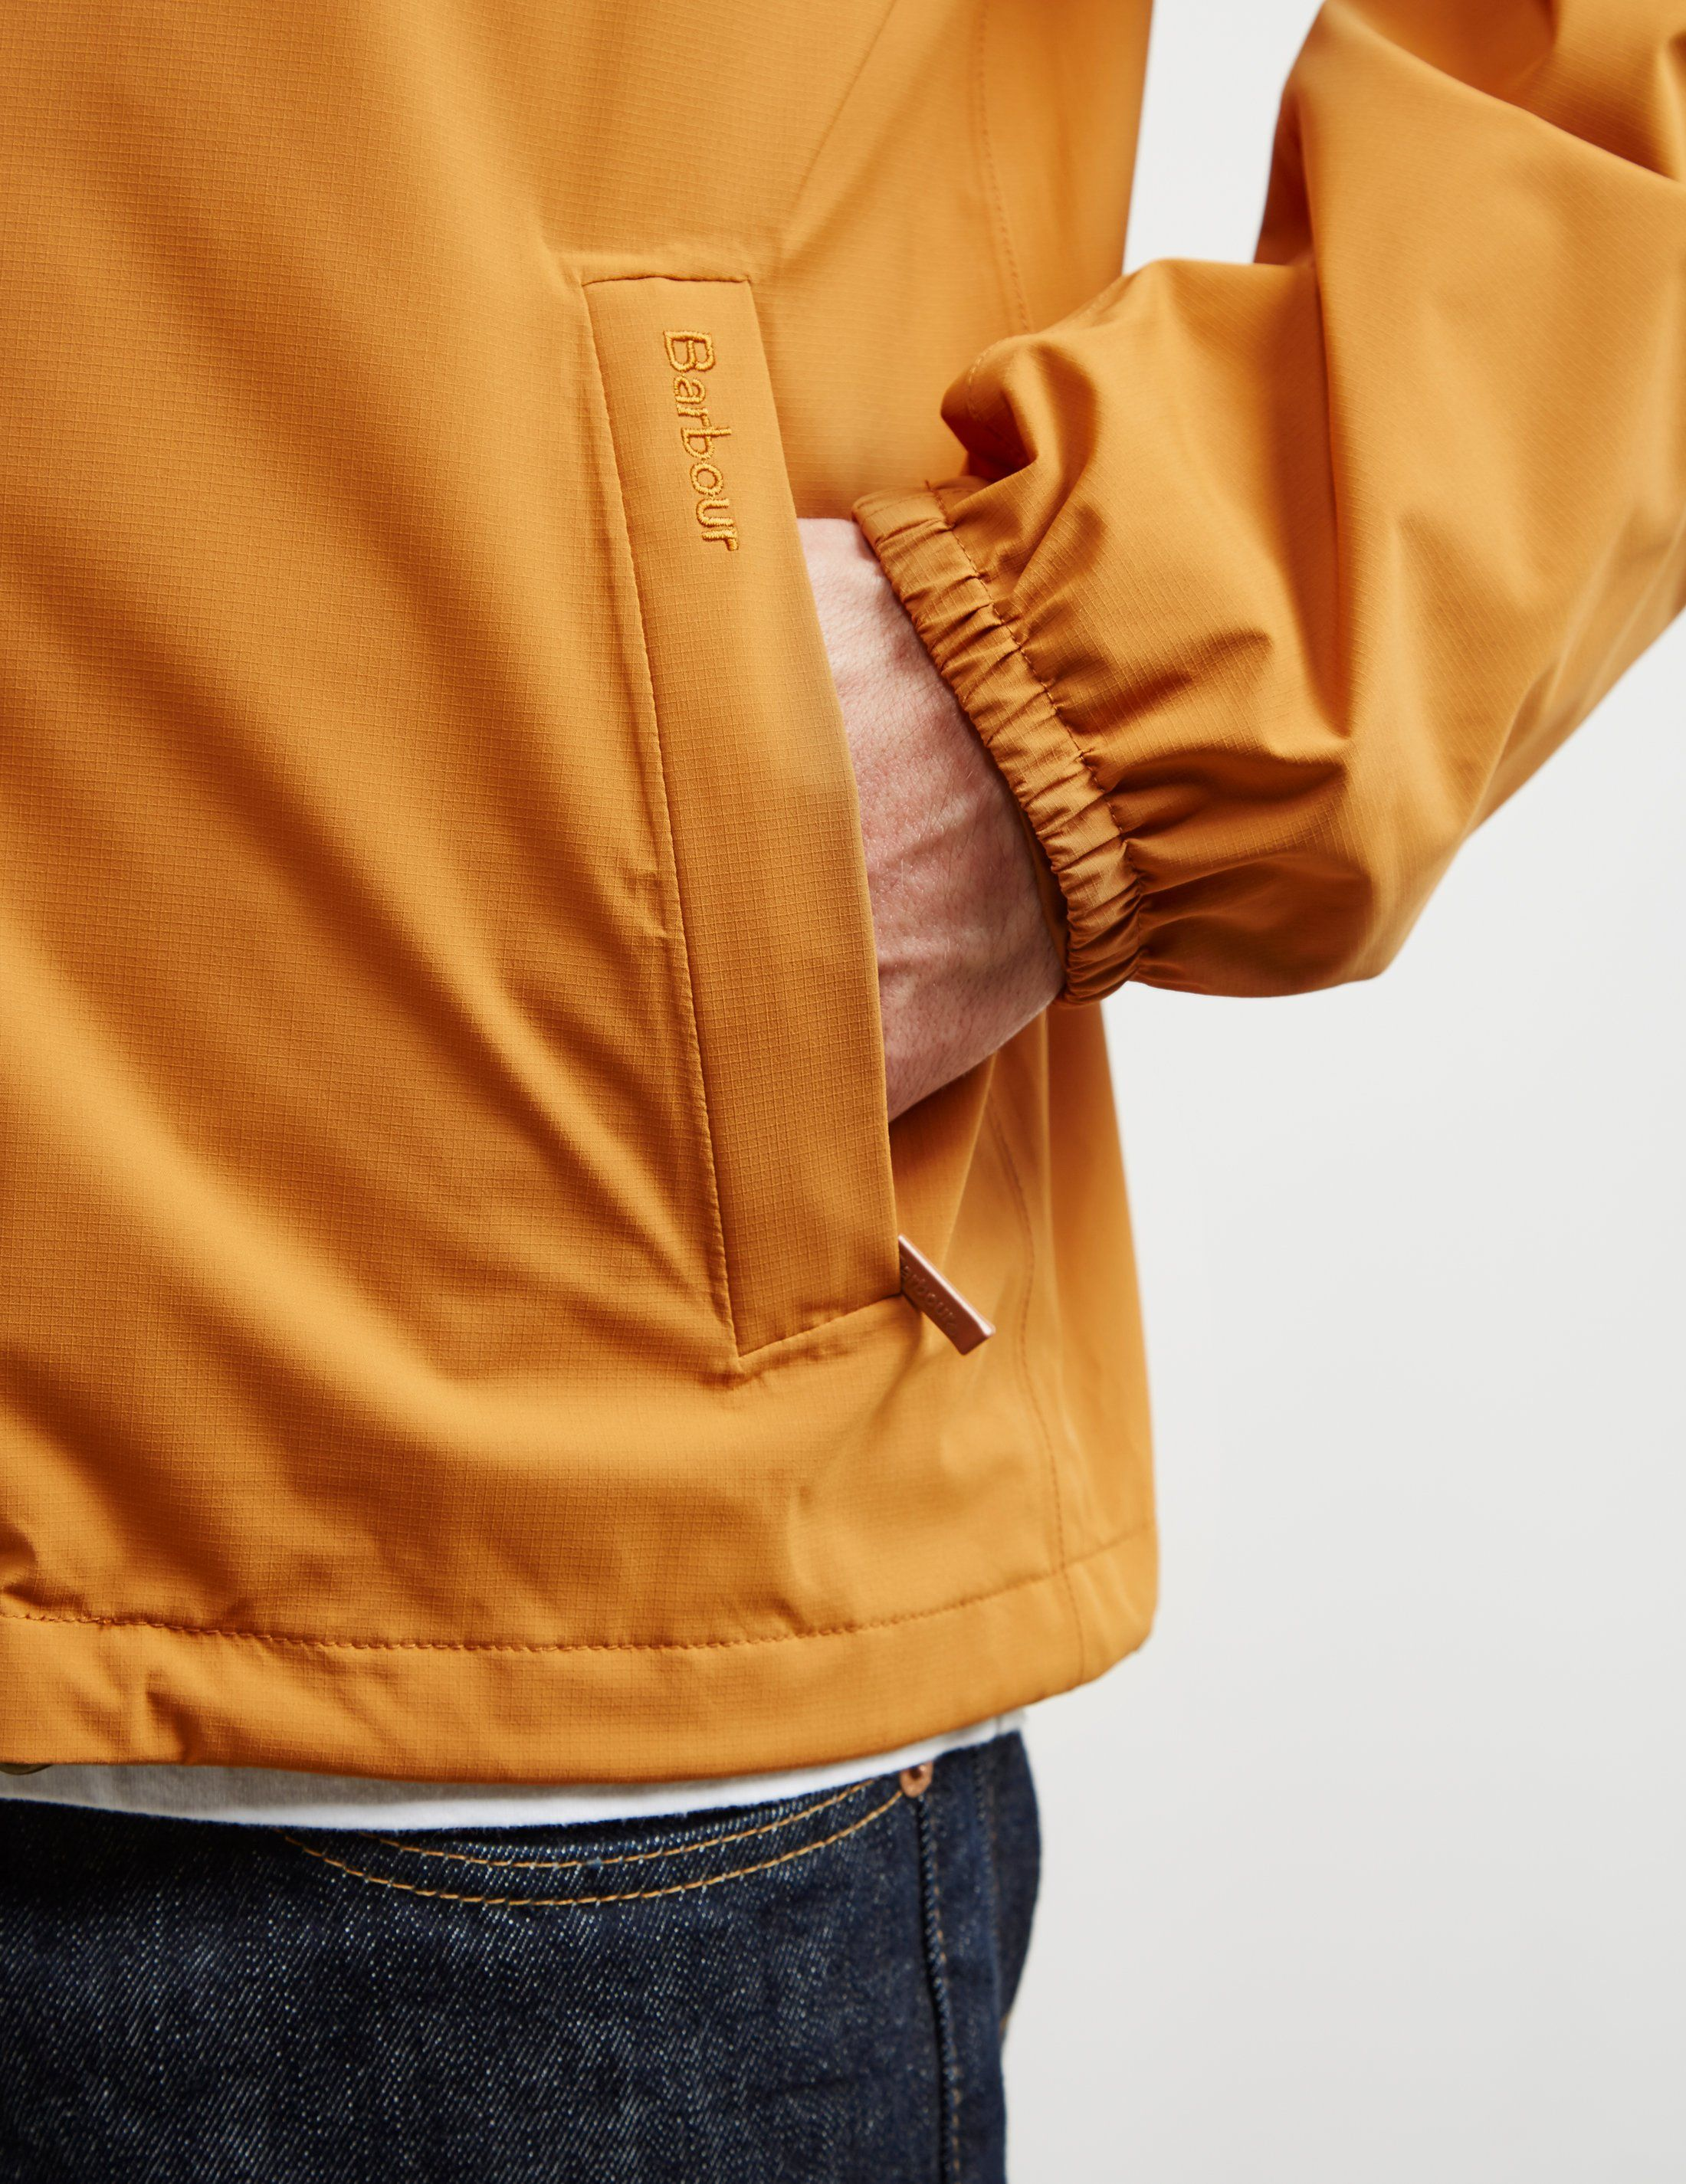 Barbour Irvine Light Jacket - Online Exclusive